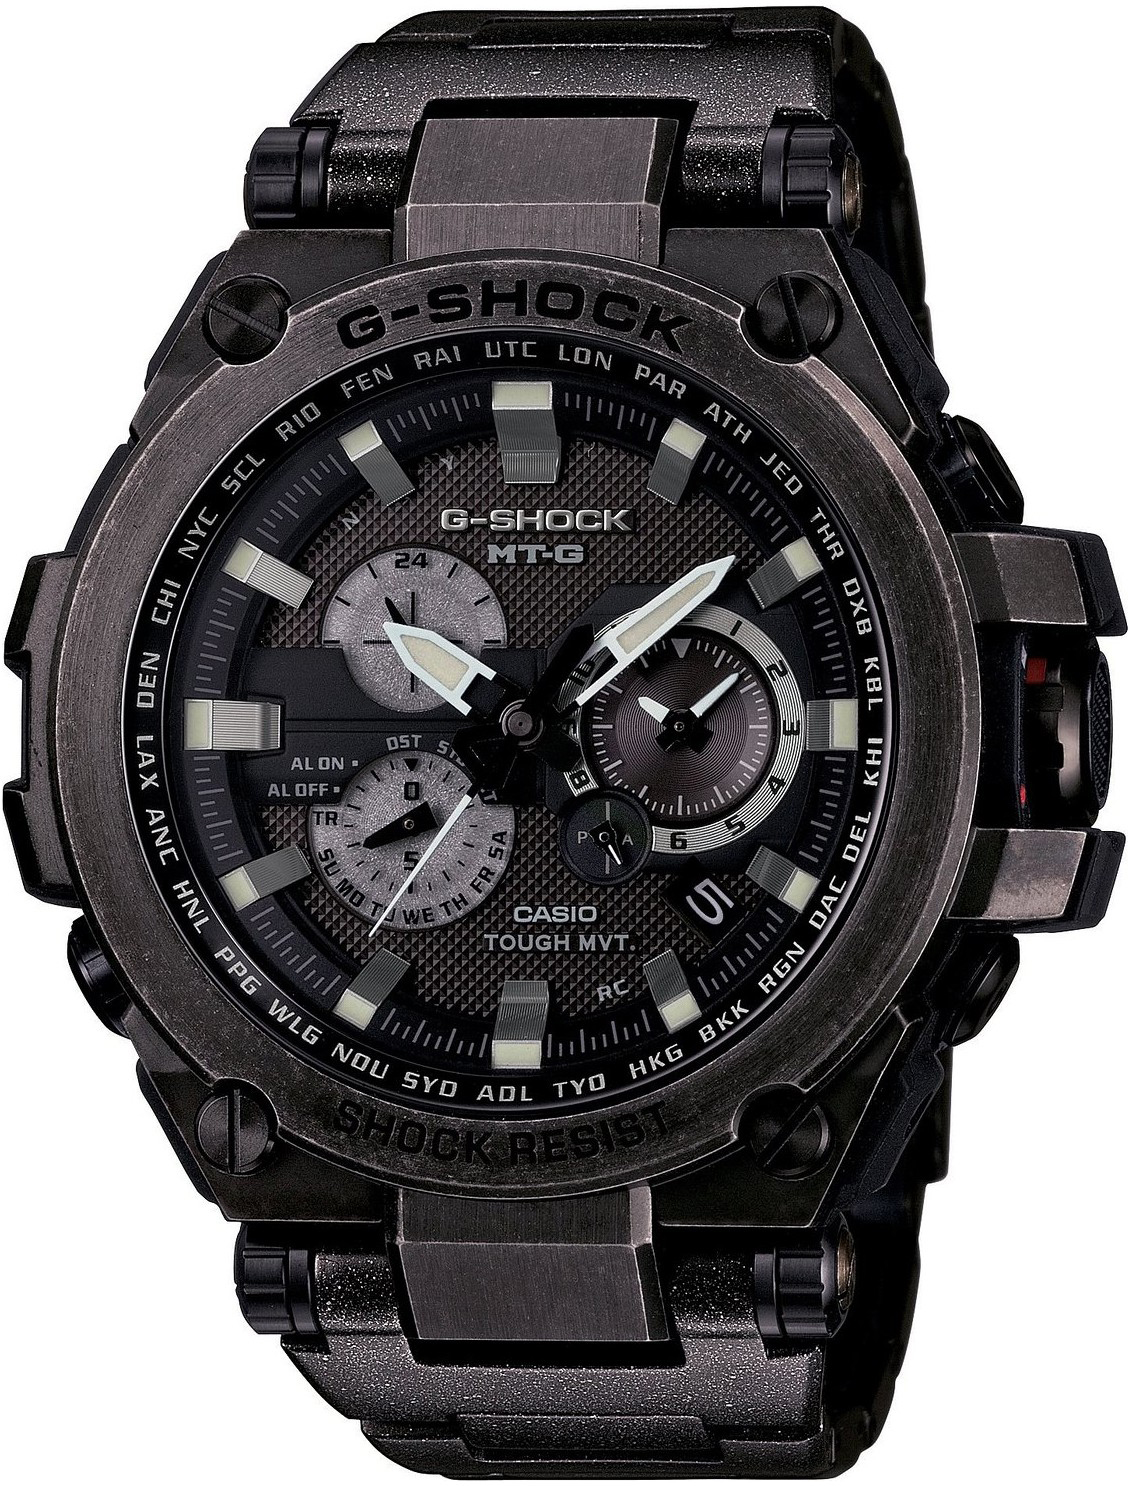 Casio G-shock MT-G MTG-S1000V-1A casio g shock mt g mtg g1000gb 1a